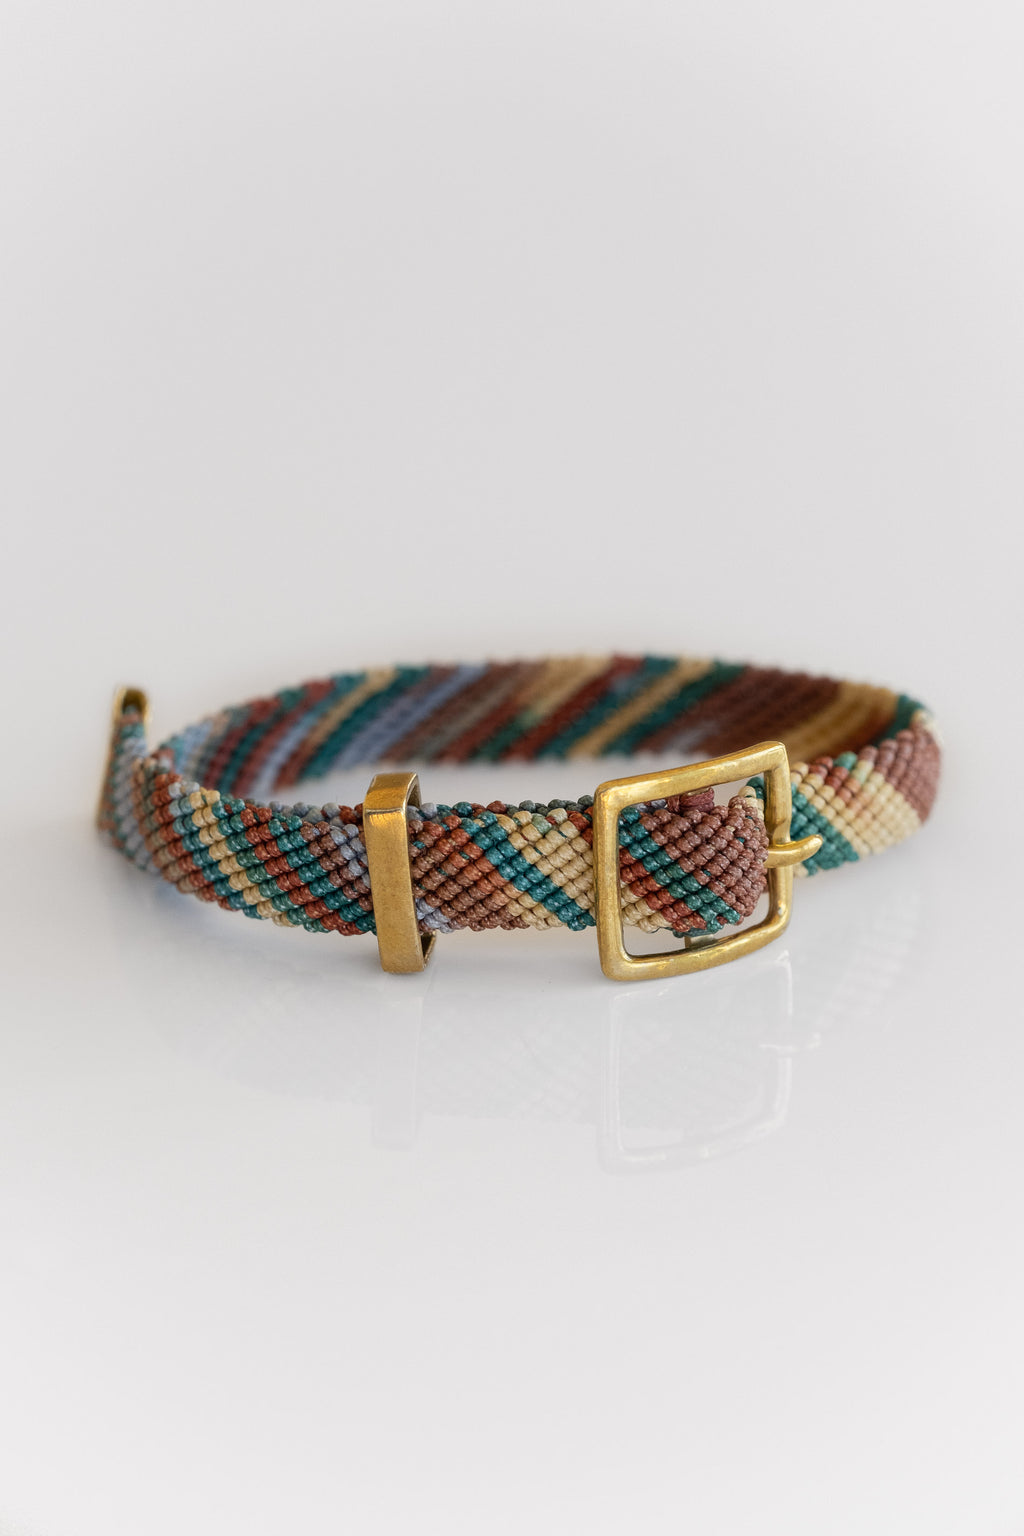 BRASS + VINTAGE FLYLINE BELT BRACELET